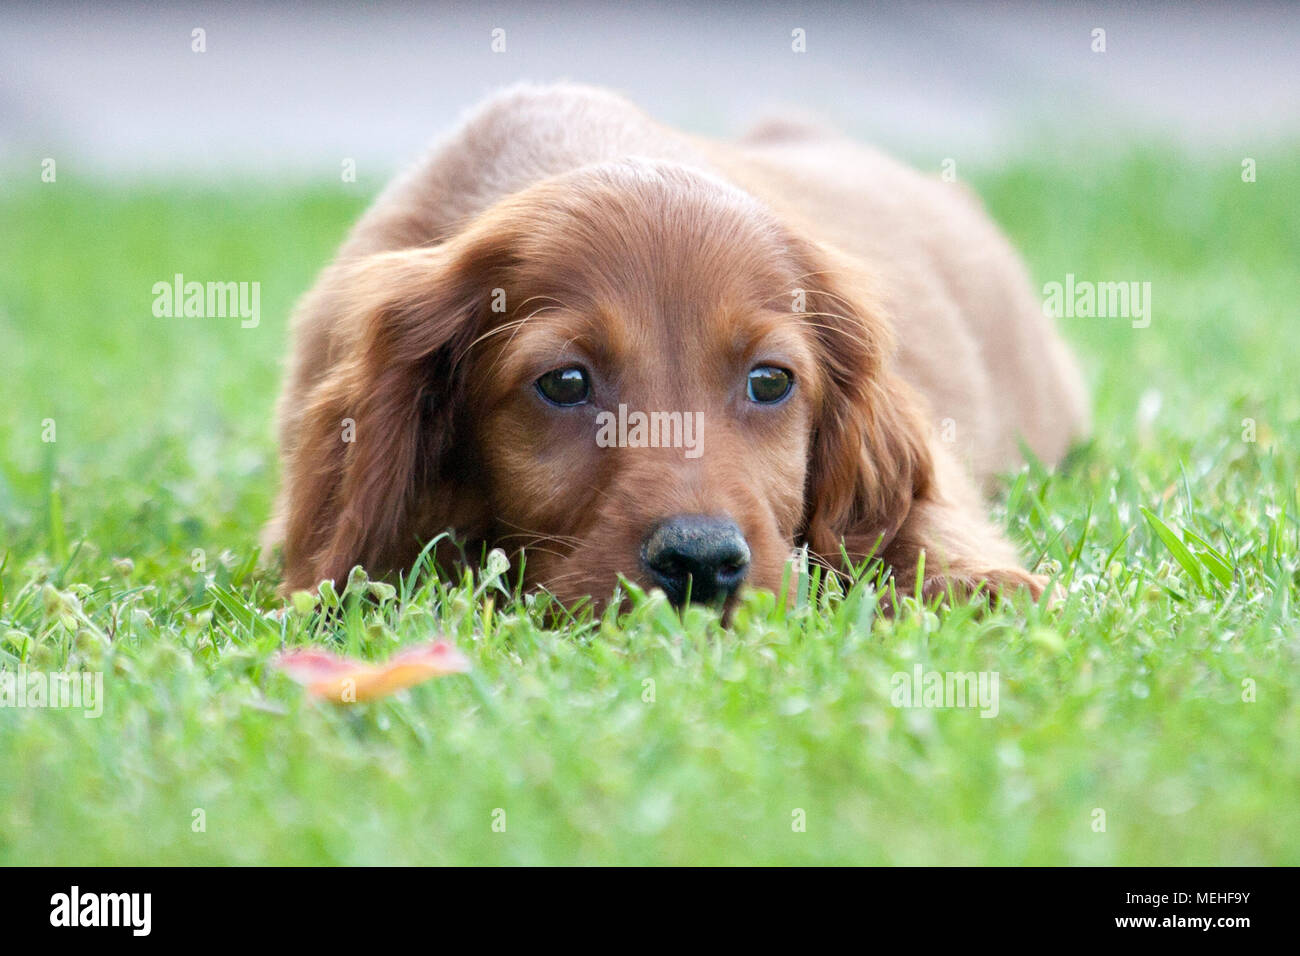 Little Irish Setter - Stock Image